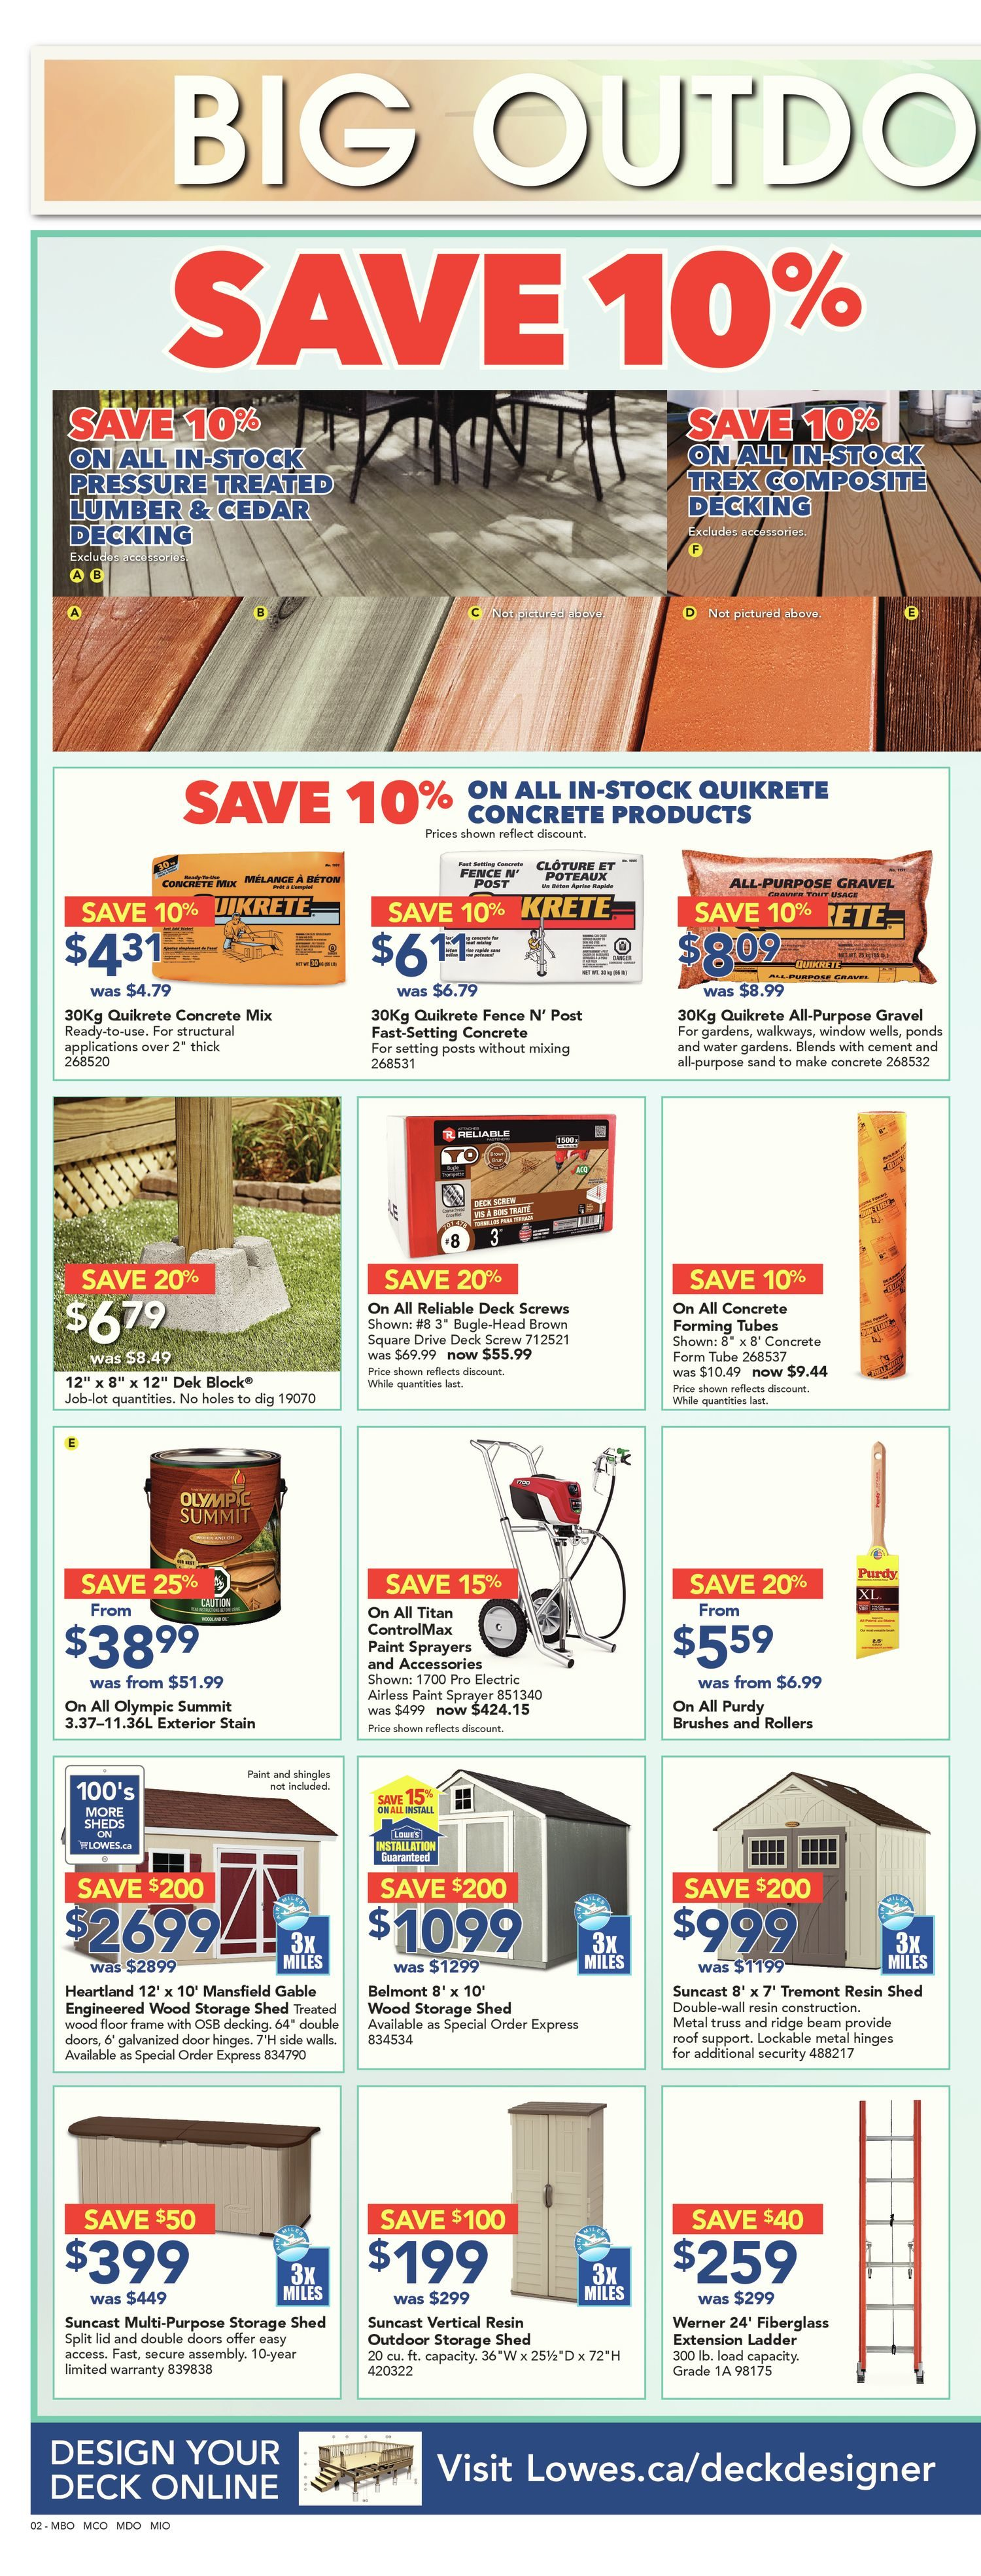 Lowe's Weekly Flyer - Weekly - Big Outdoor Event - May 24